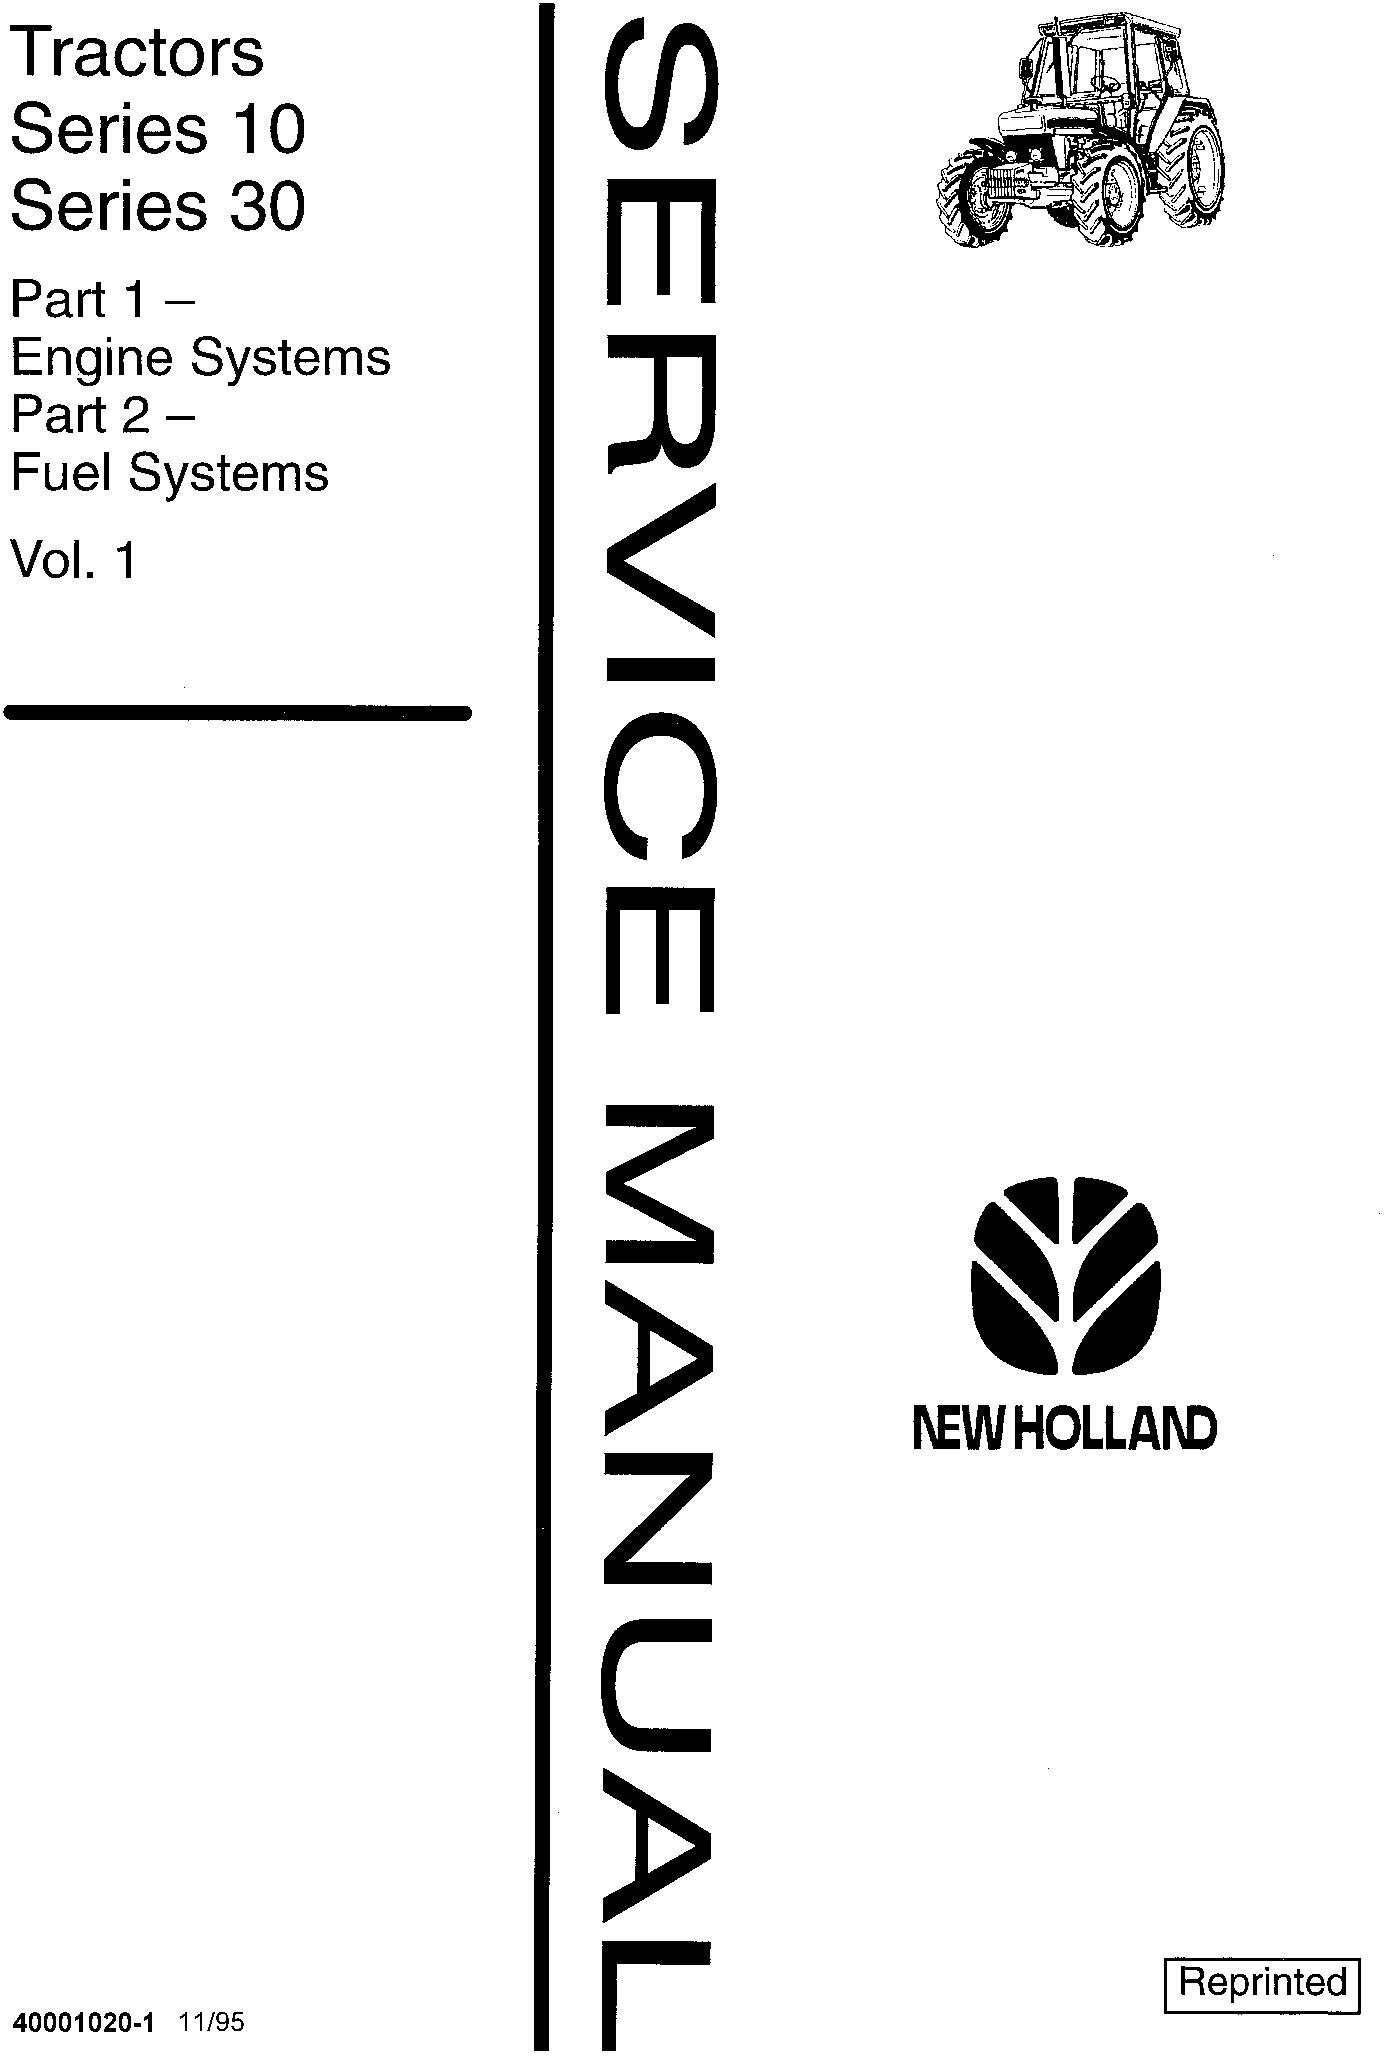 Ford , New Holland 2310-8210 (xx10 Series), 3230, 3430, 3930, 4630, 4830, 5030 Tractor Service Manual - 19372